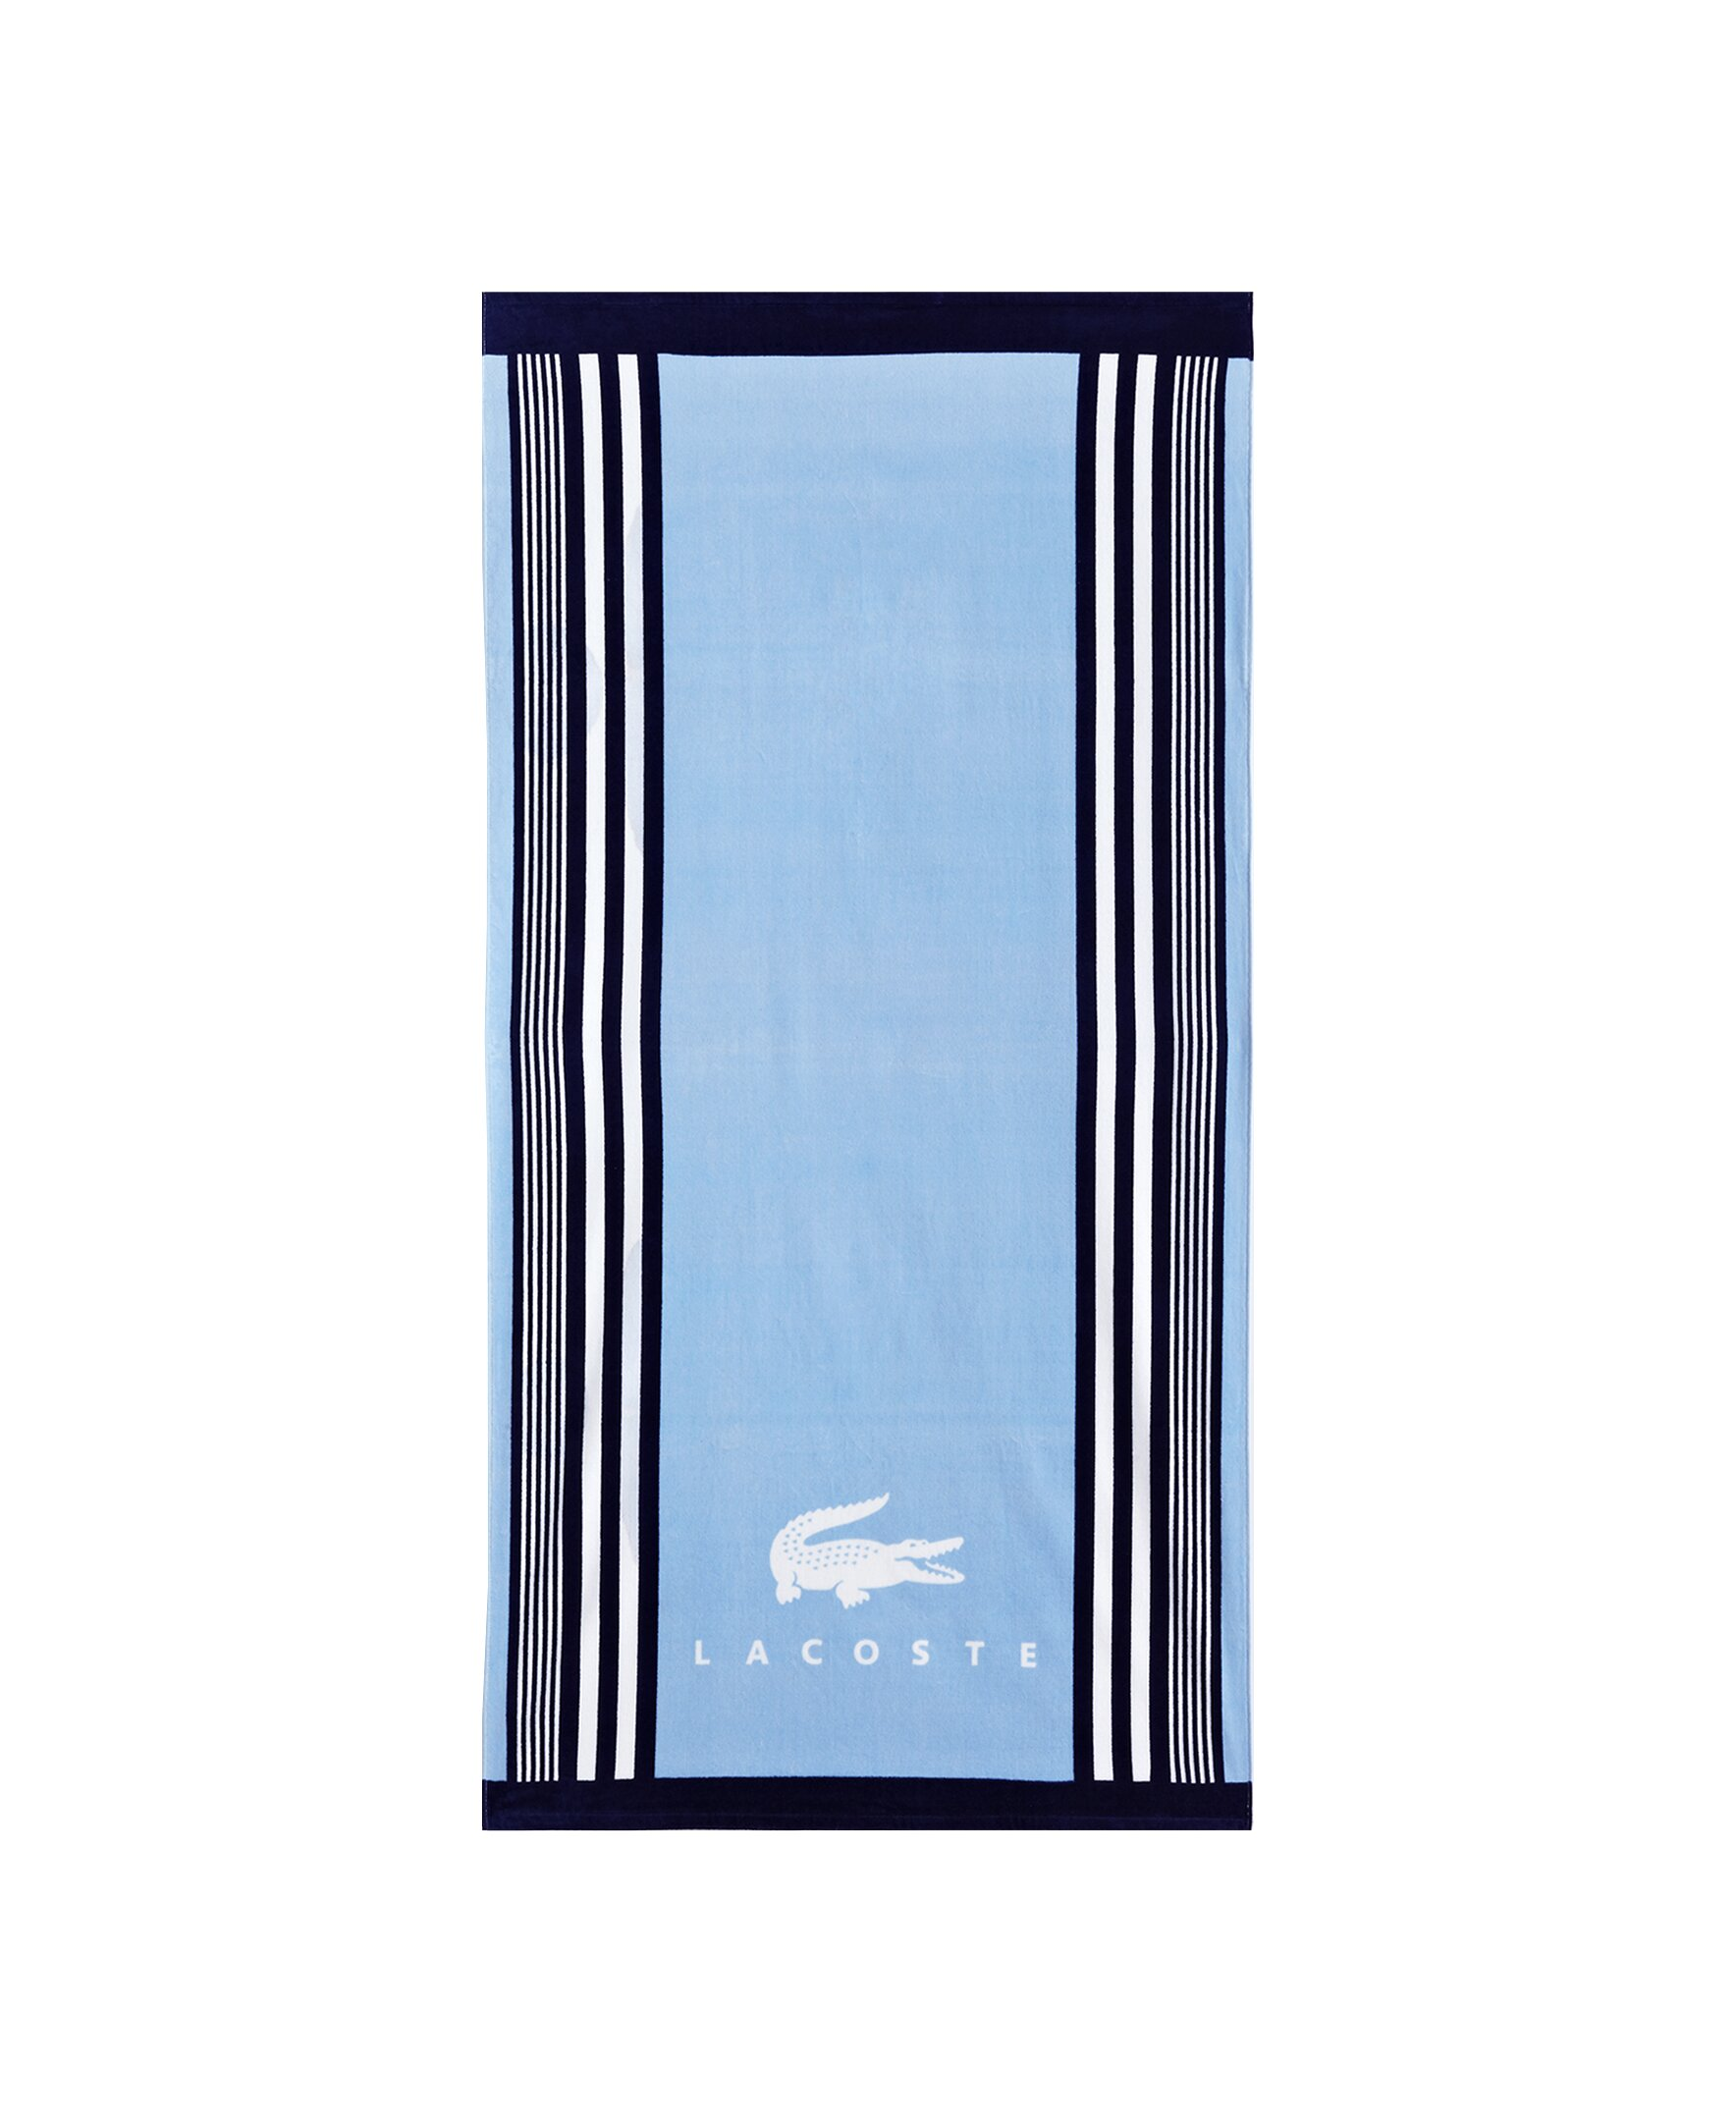 Lacoste Towels Clearance: Lacoste Oki 100% Cotton Beach Towel